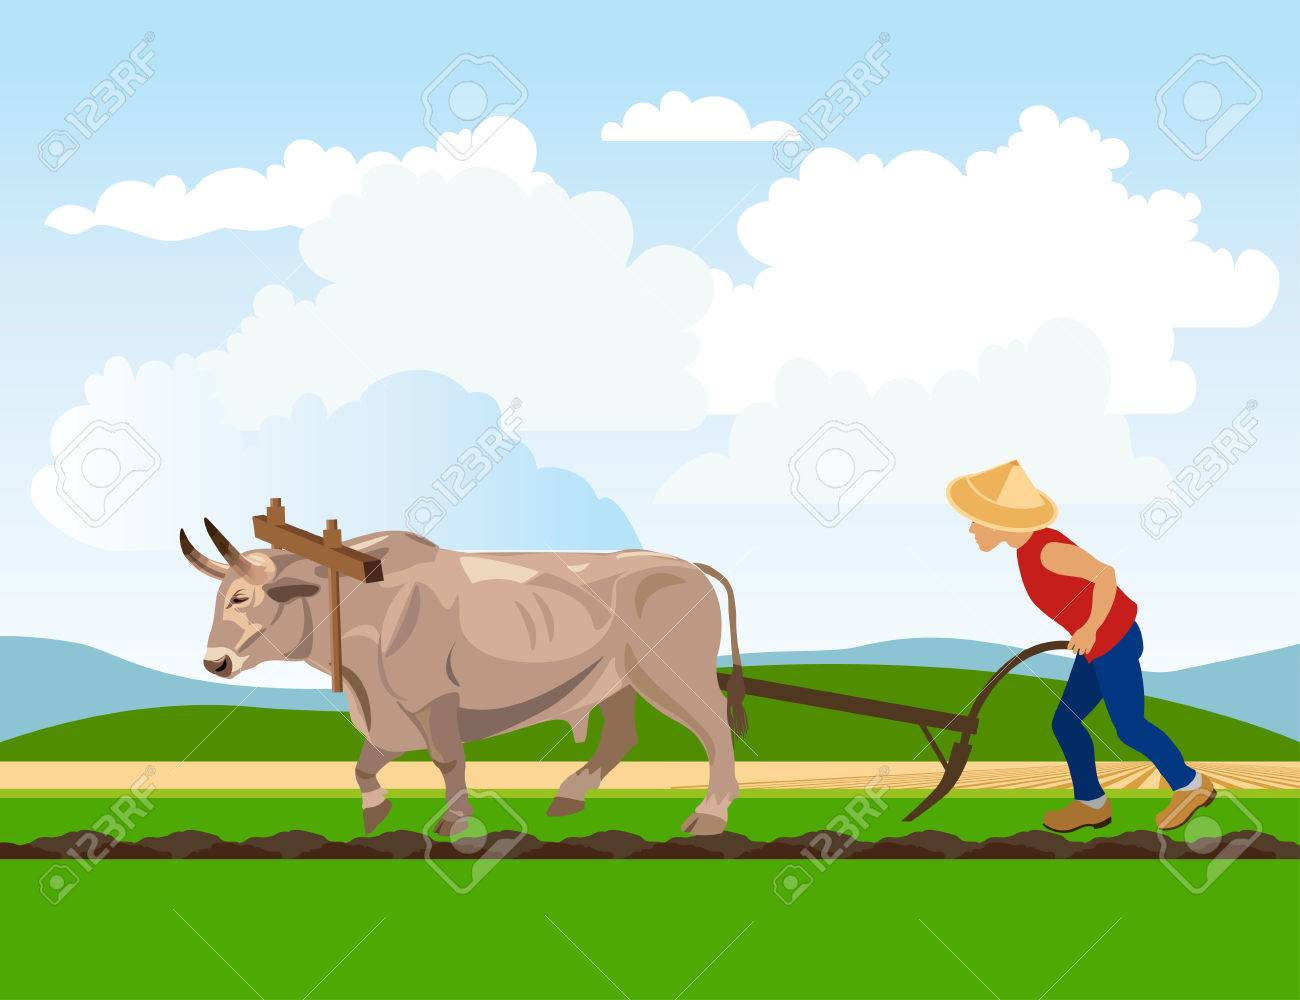 Clipart of a ox with a plow without a wip svg transparent download Ox clipart agriculture indian - 43 transparent clip arts, images and ... svg transparent download